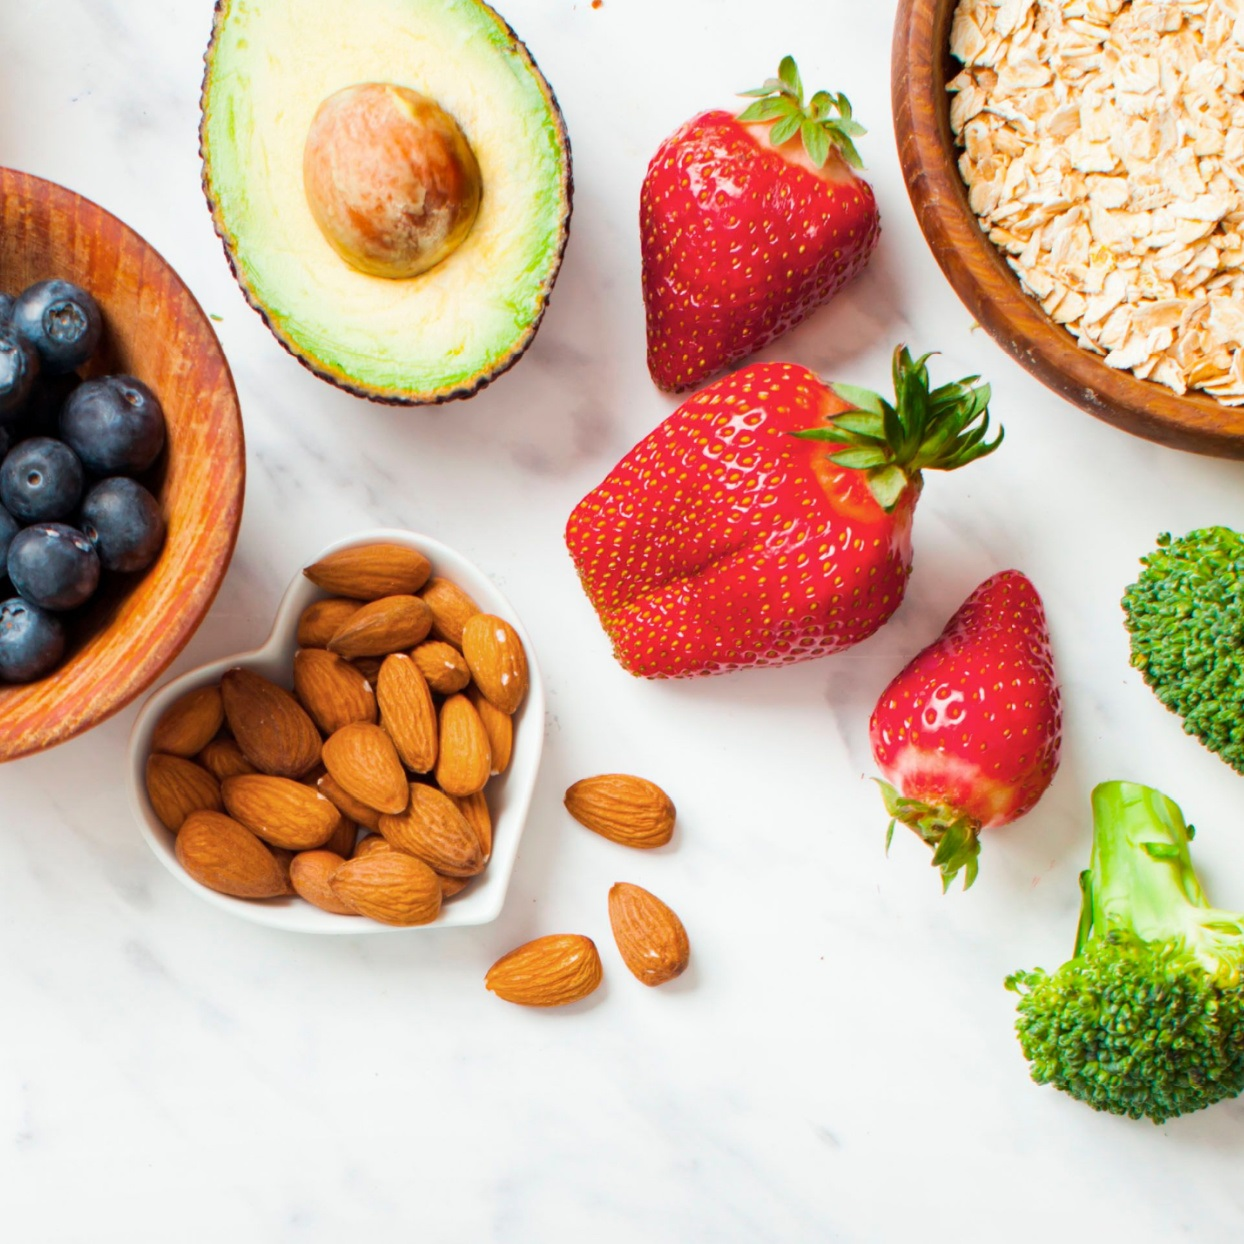 blueberries, avocado, strawberries, oats, and almonds